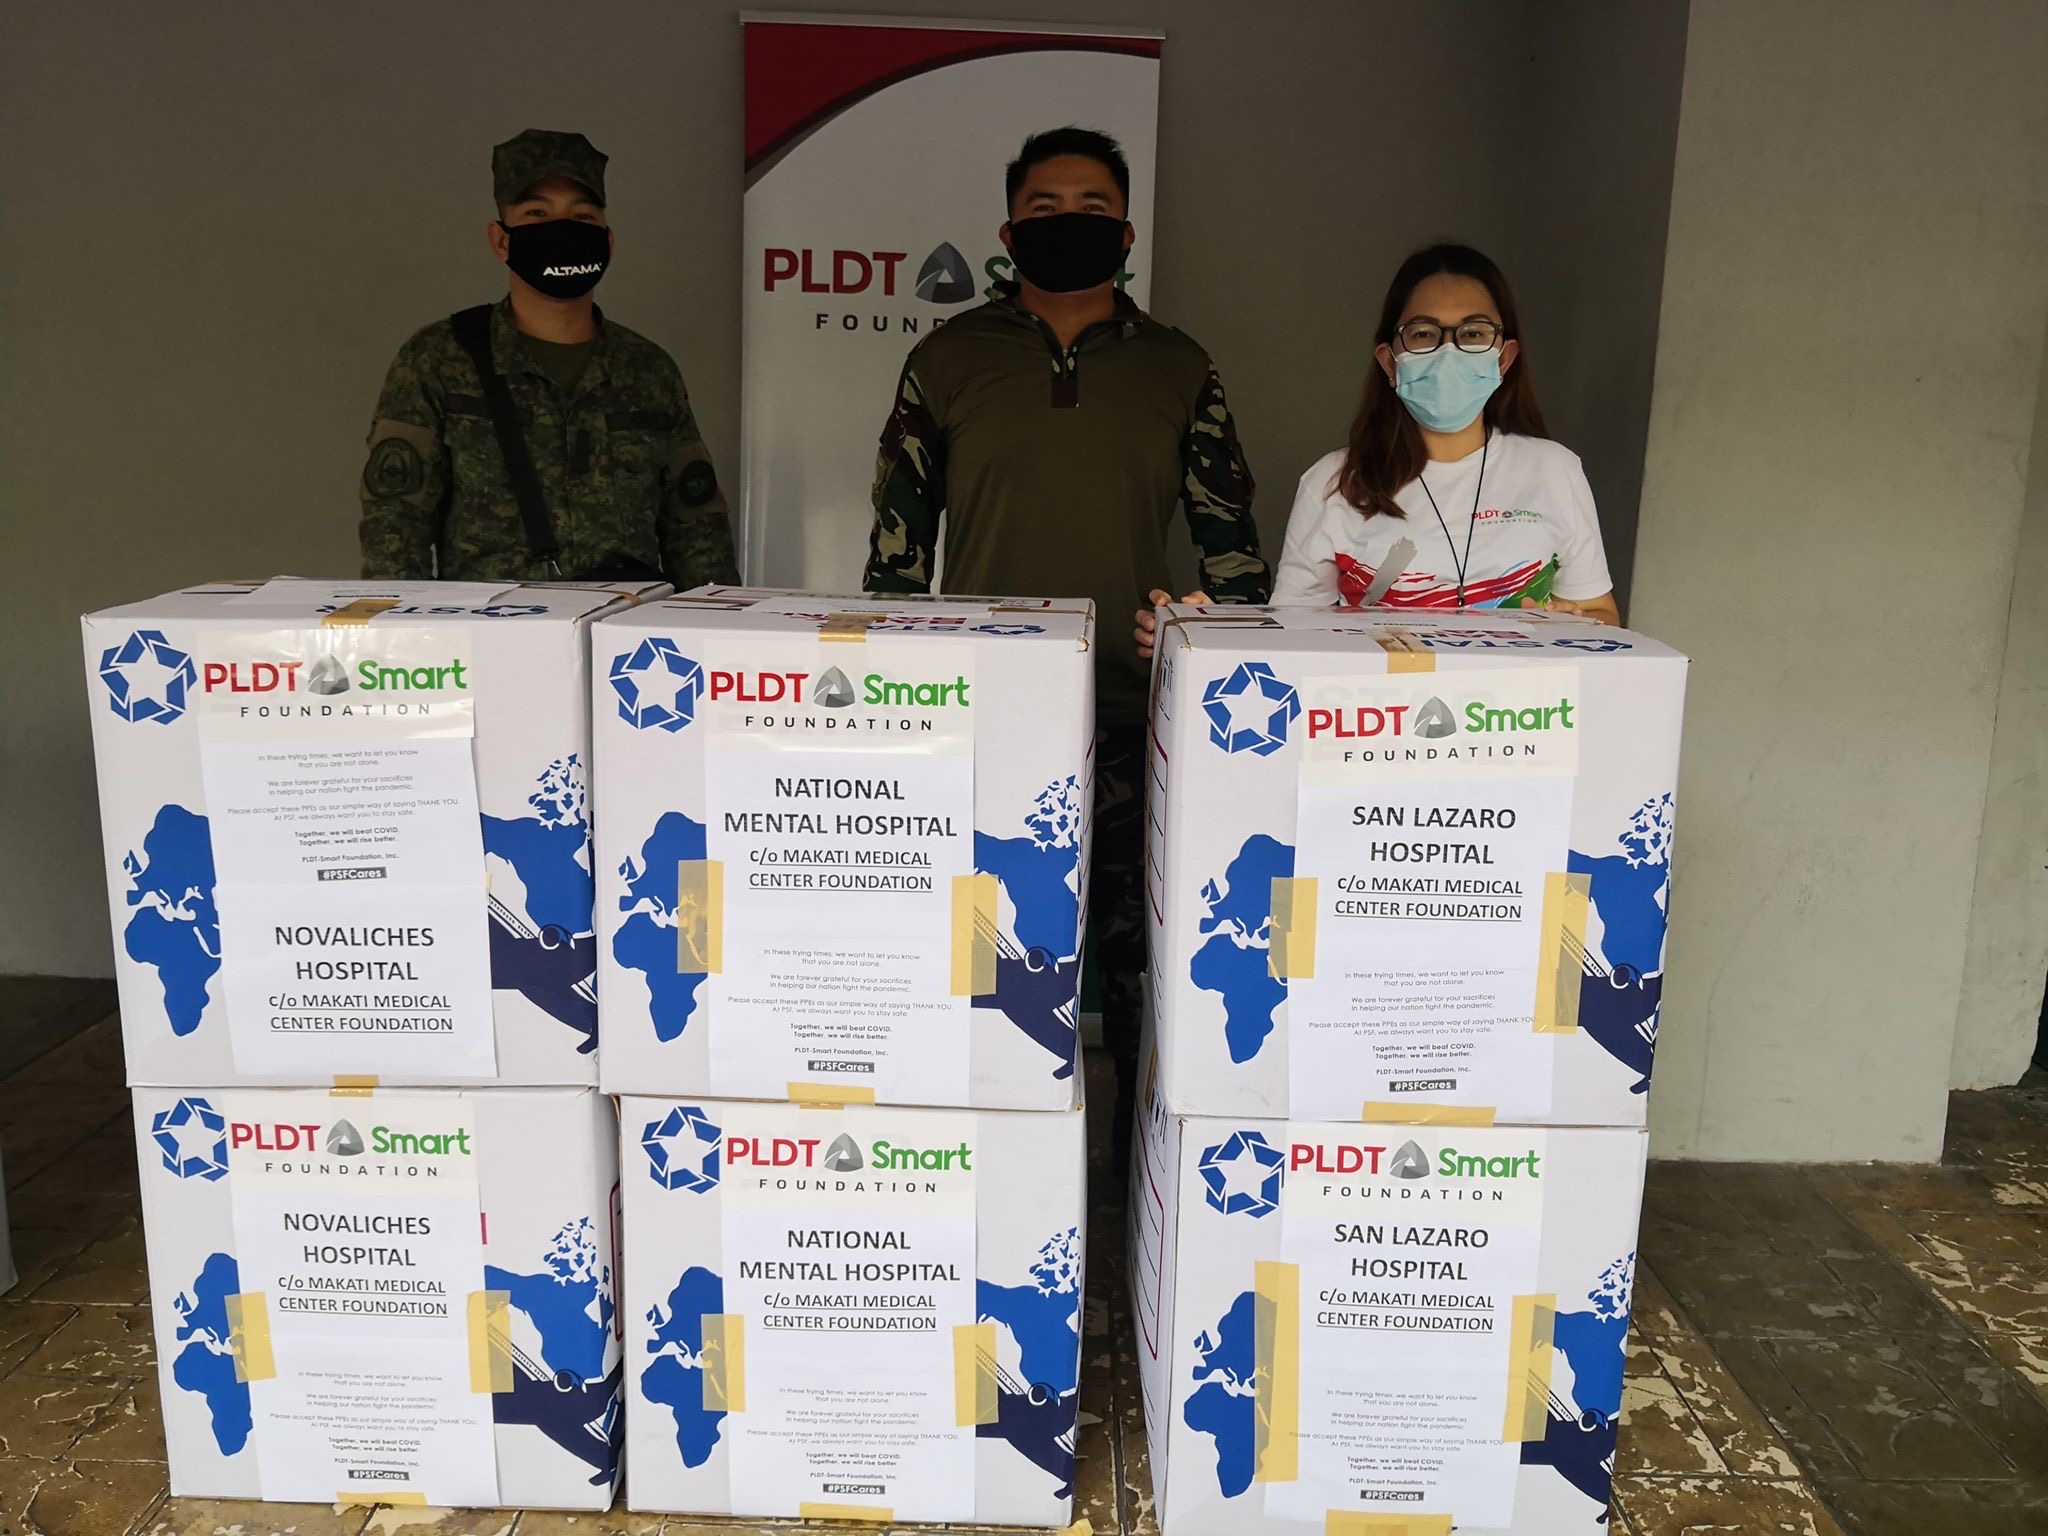 PLDT-Smart Foundation partners with women's group to provide face masks, PPEs to frontliners